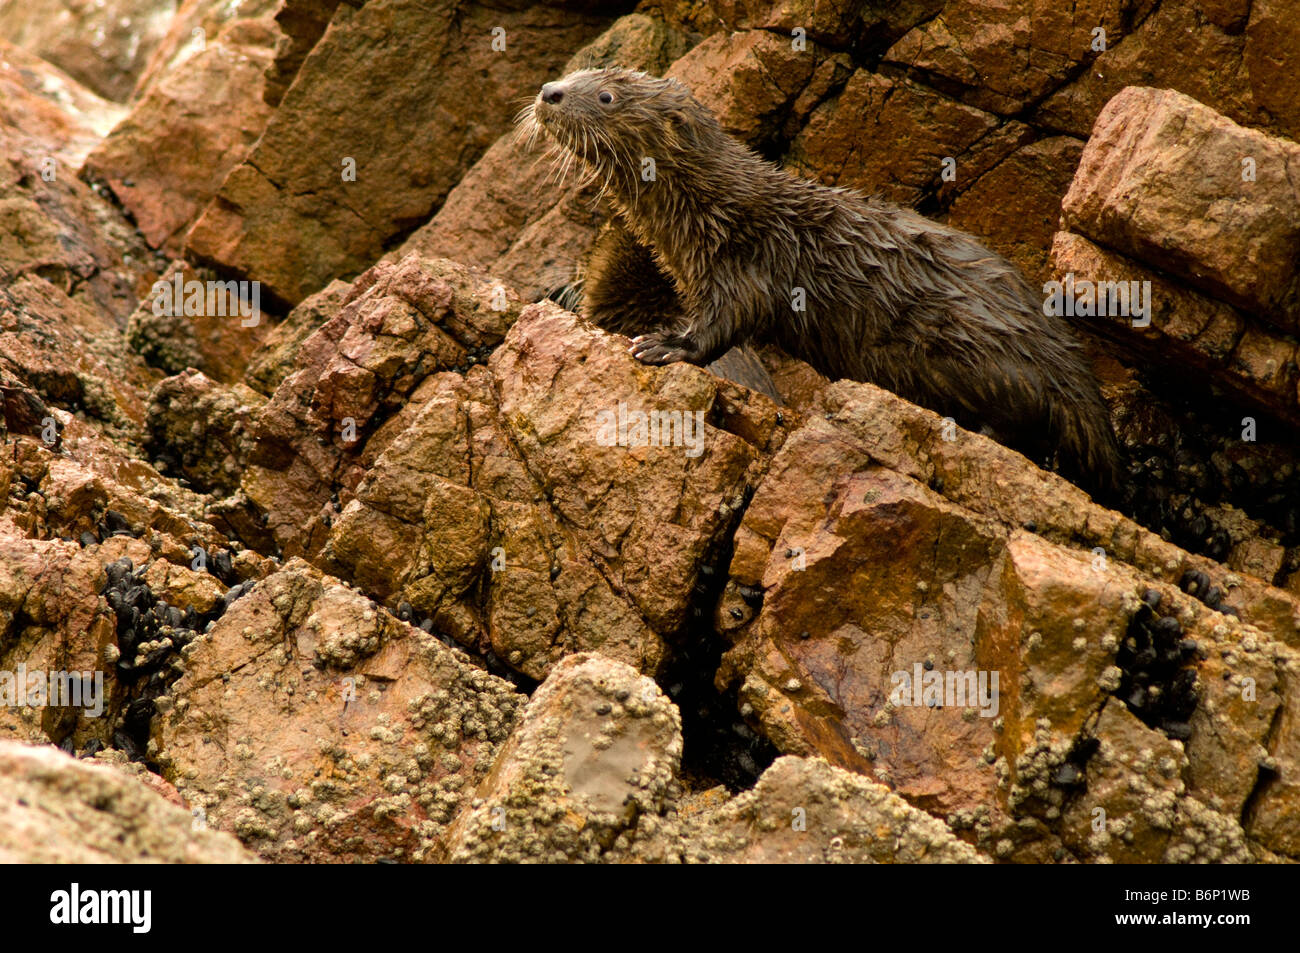 MARINE OTTER Lontra felina Previously Lutra felina Paracas National Park Peru young ENDANGERED - Stock Image